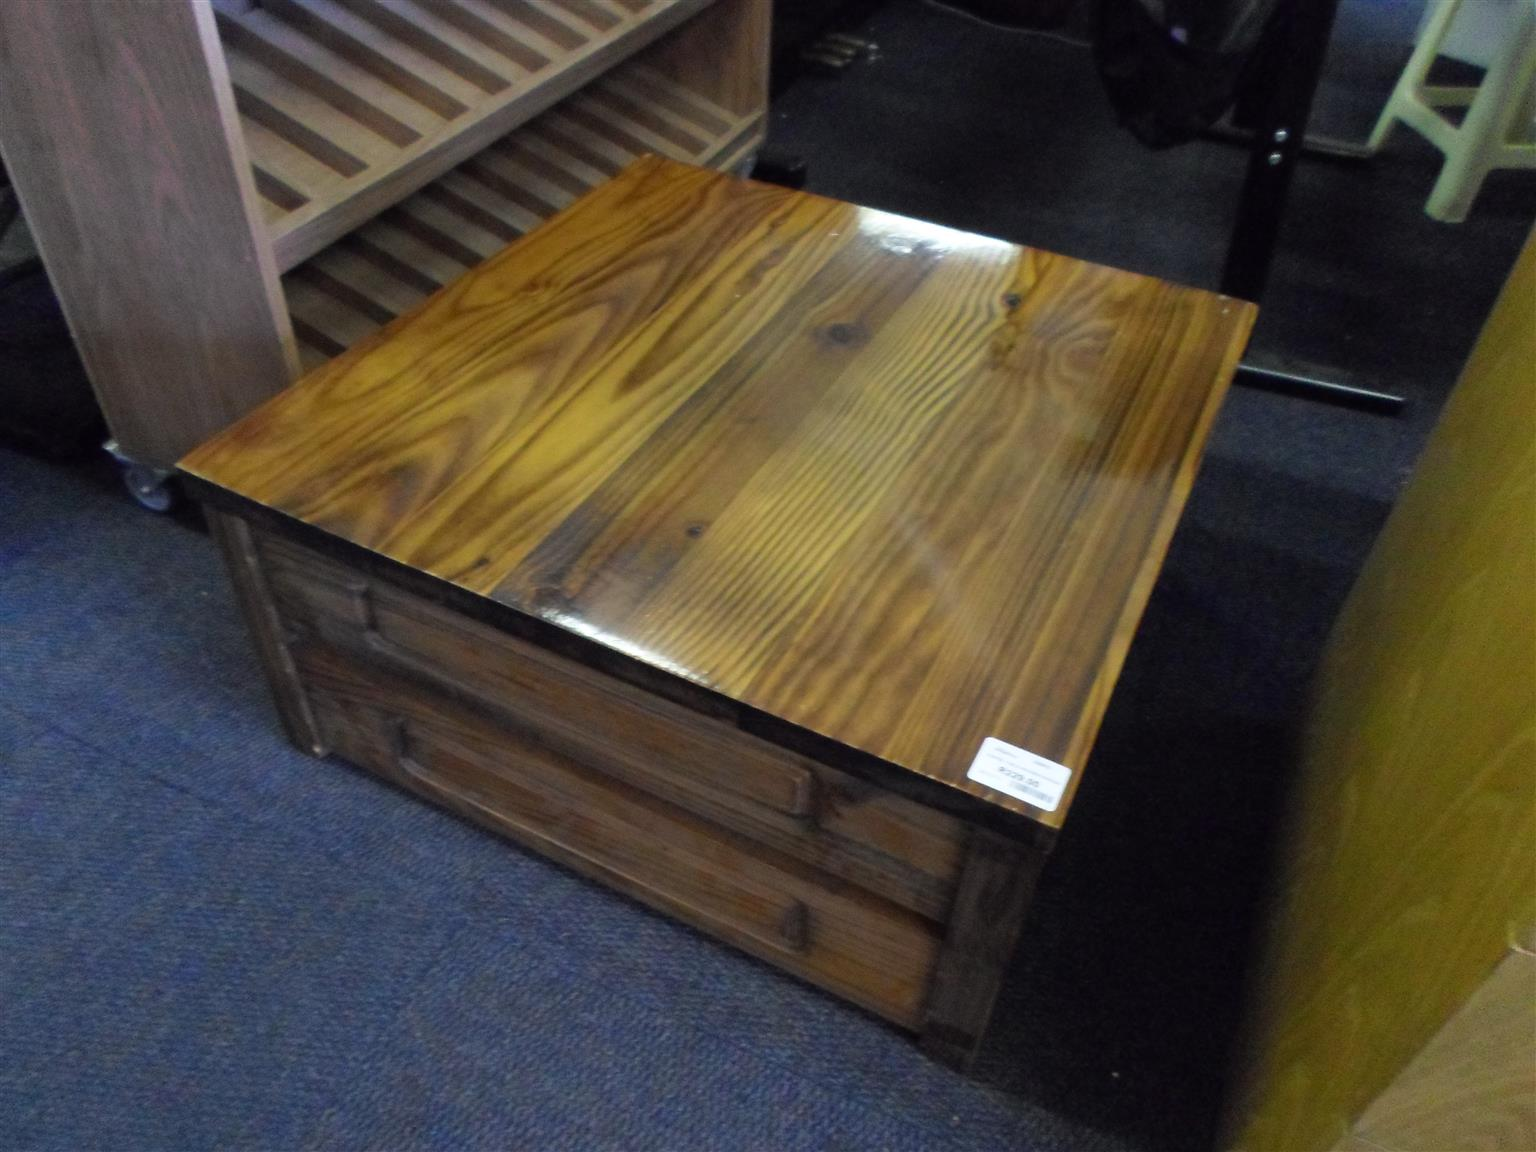 Wooden Coffee Table f